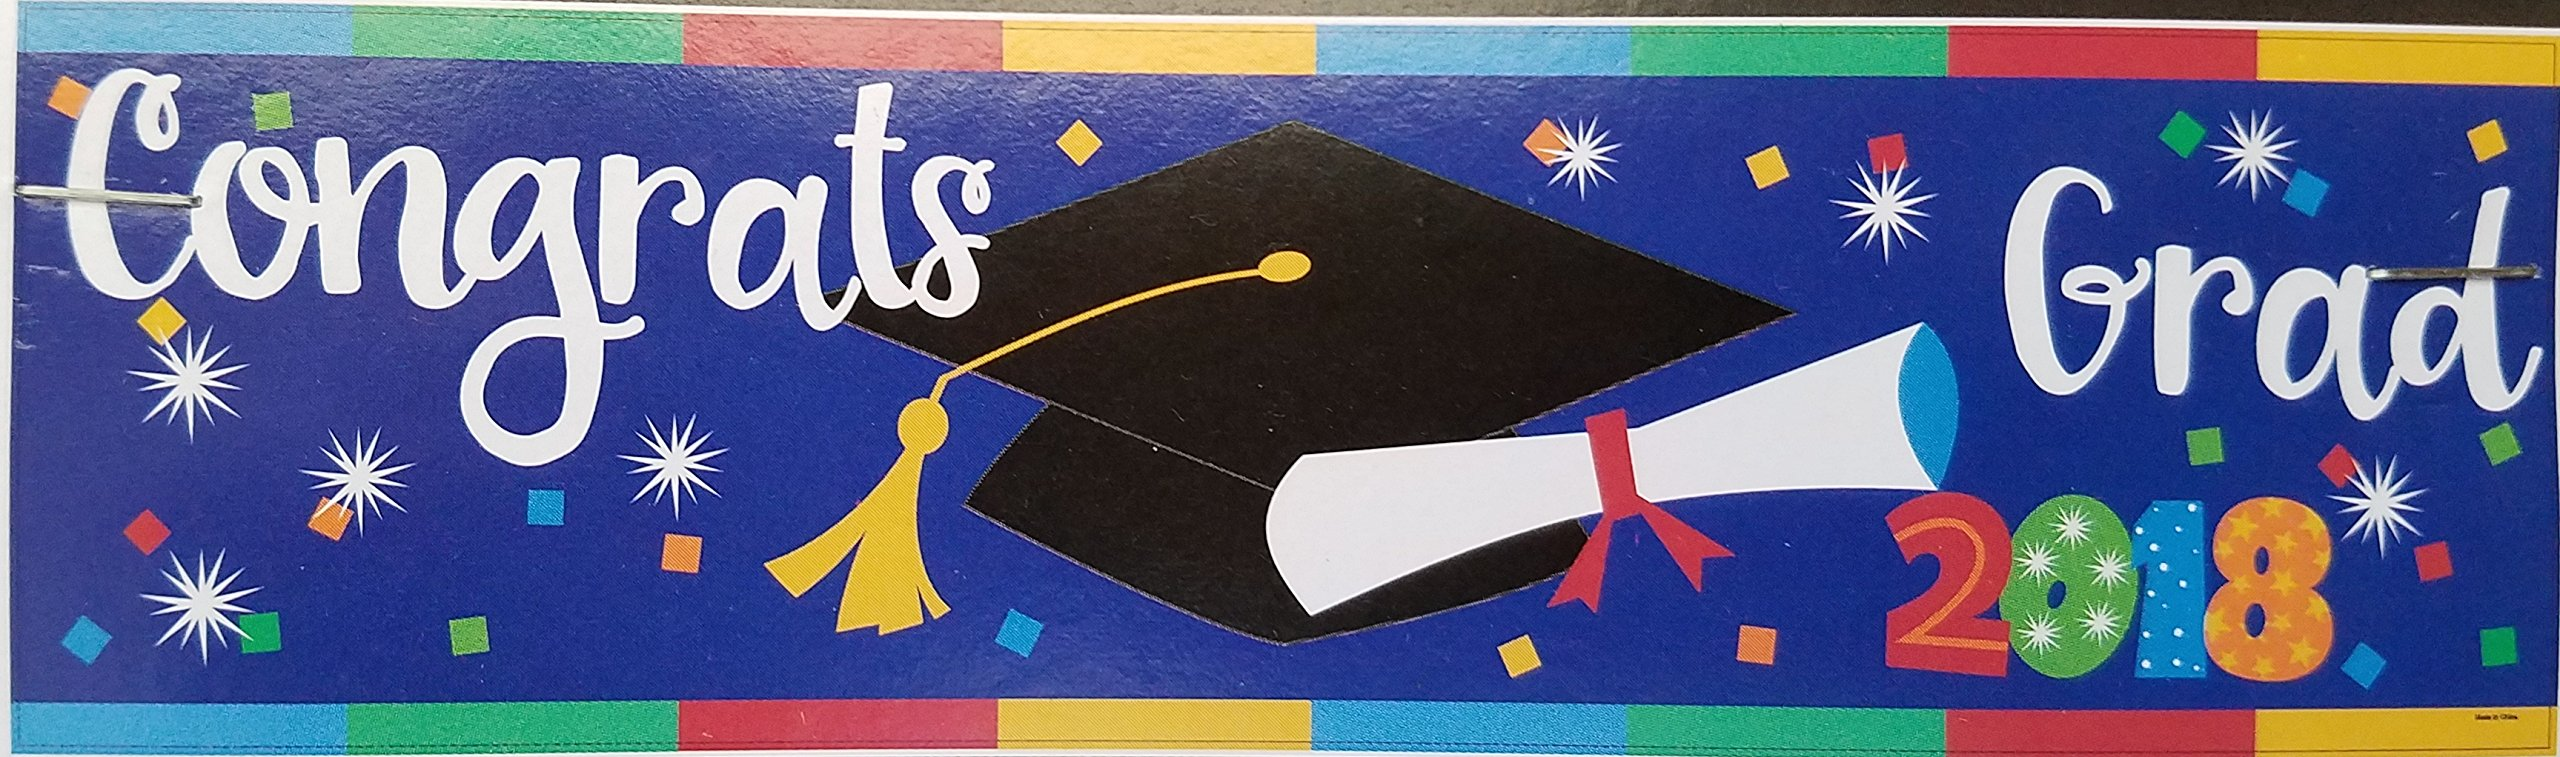 2018 Graduation Party Decorations Bundle: Accessories Include Congrats 2018 Grad Party Banner, Table Centerpiece, Cutouts, and a Beachball in a Confetti Design by TLP Party (Image #2)